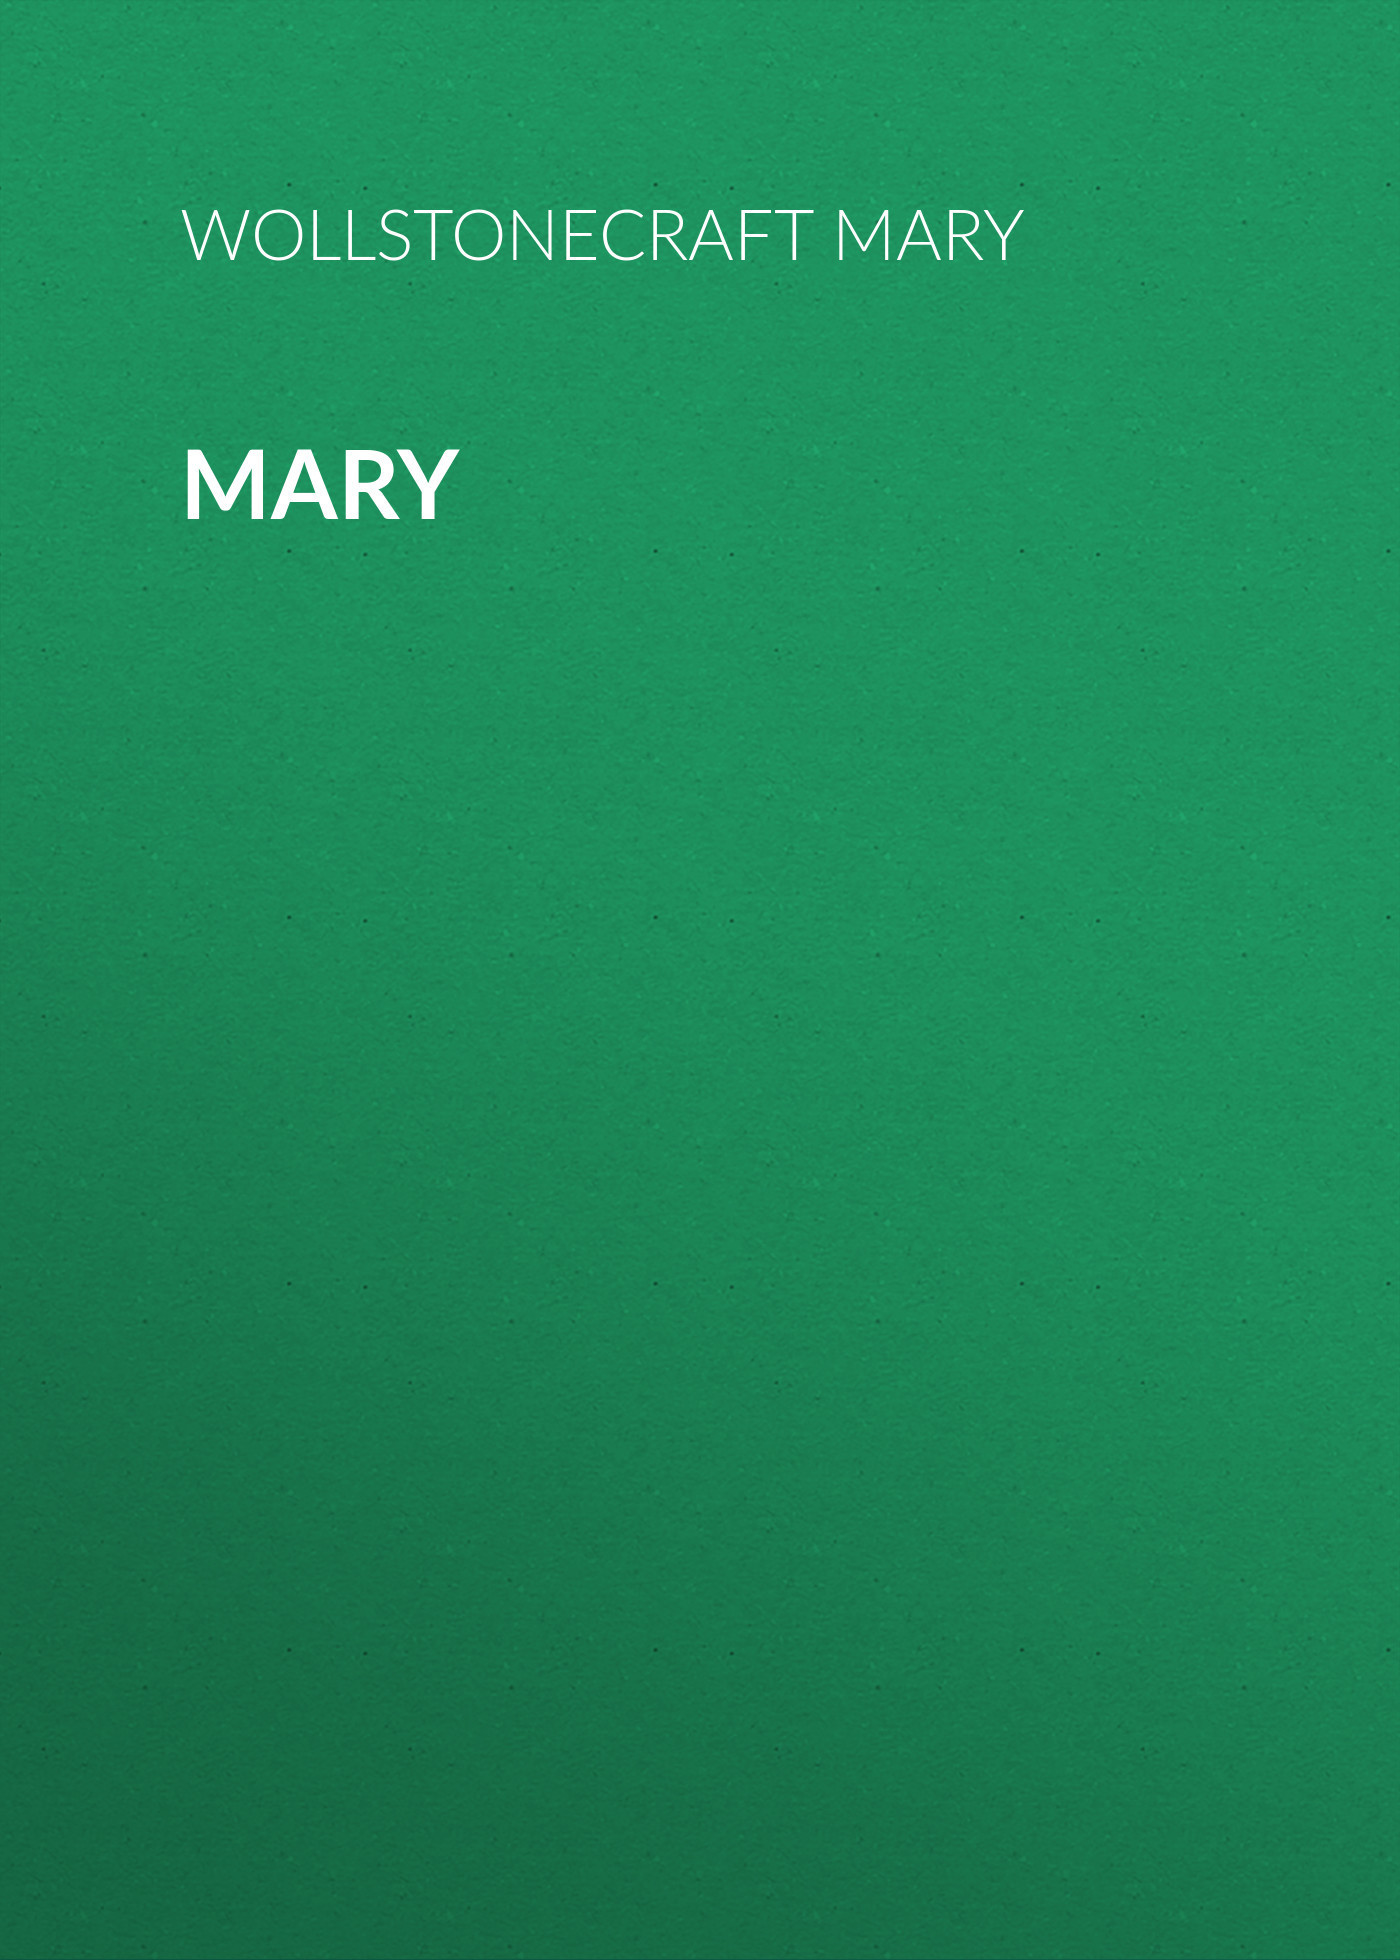 Wollstonecraft Mary Mary the letters of mary wollstonecraft shelley vol 1